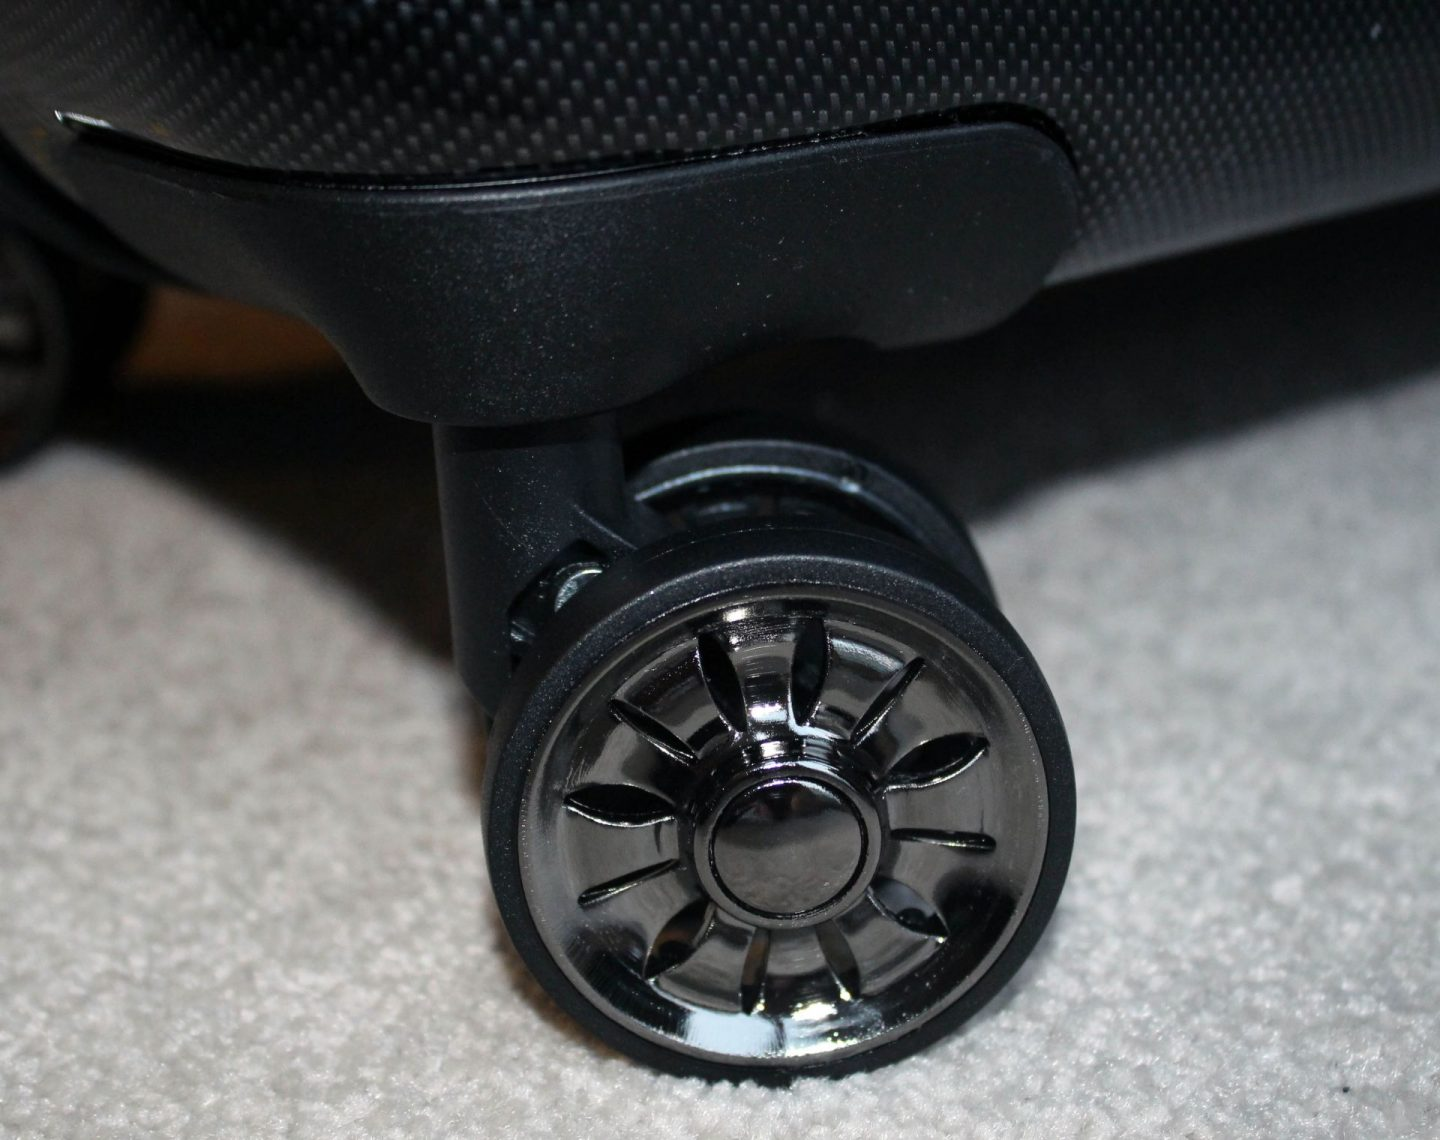 Pic of wheels on a suitcase.